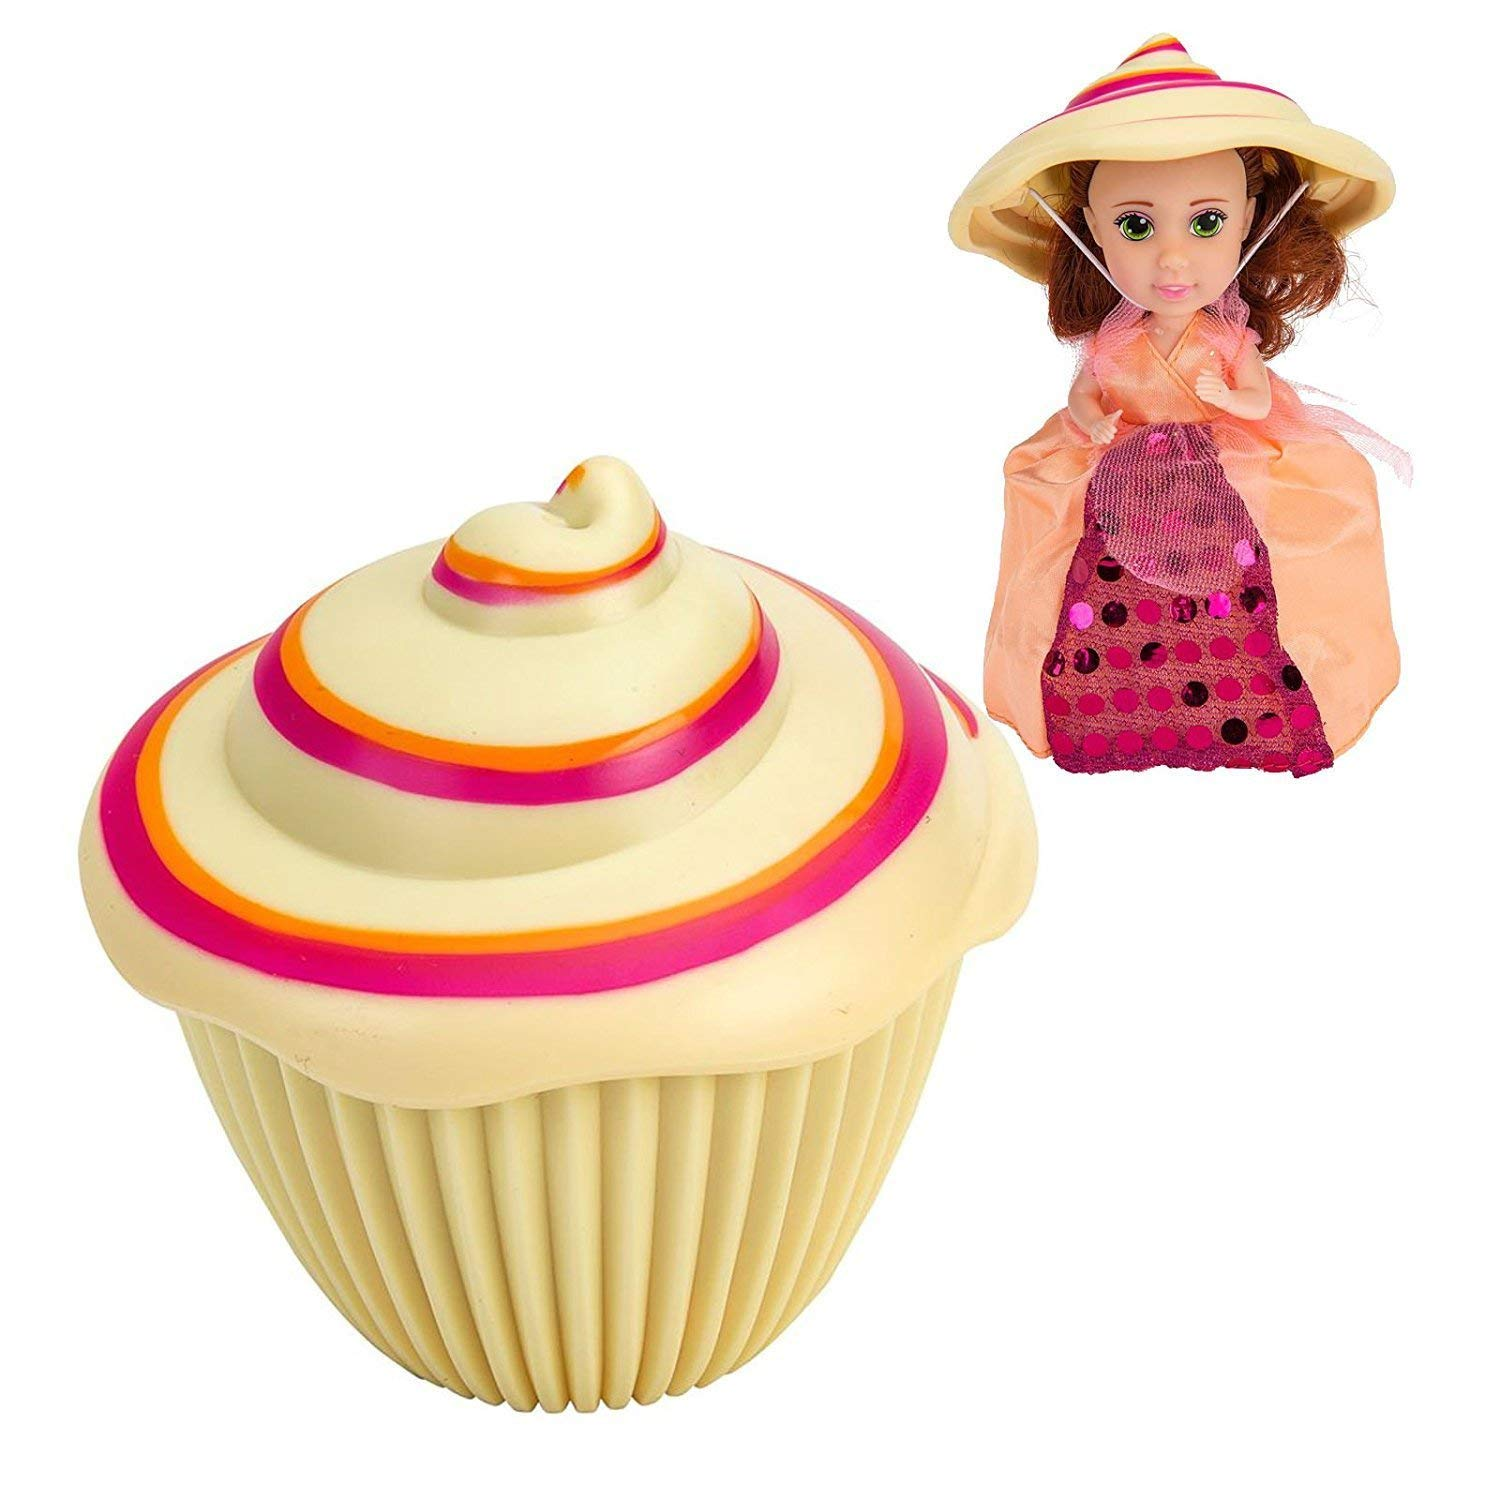 Cupcake Surprise Princess Edition Scented Doll Esther Matching Mini Surprise Doll Esther Set of 2 Bonus Bling Clip-ON Lipgloss Sunny Days